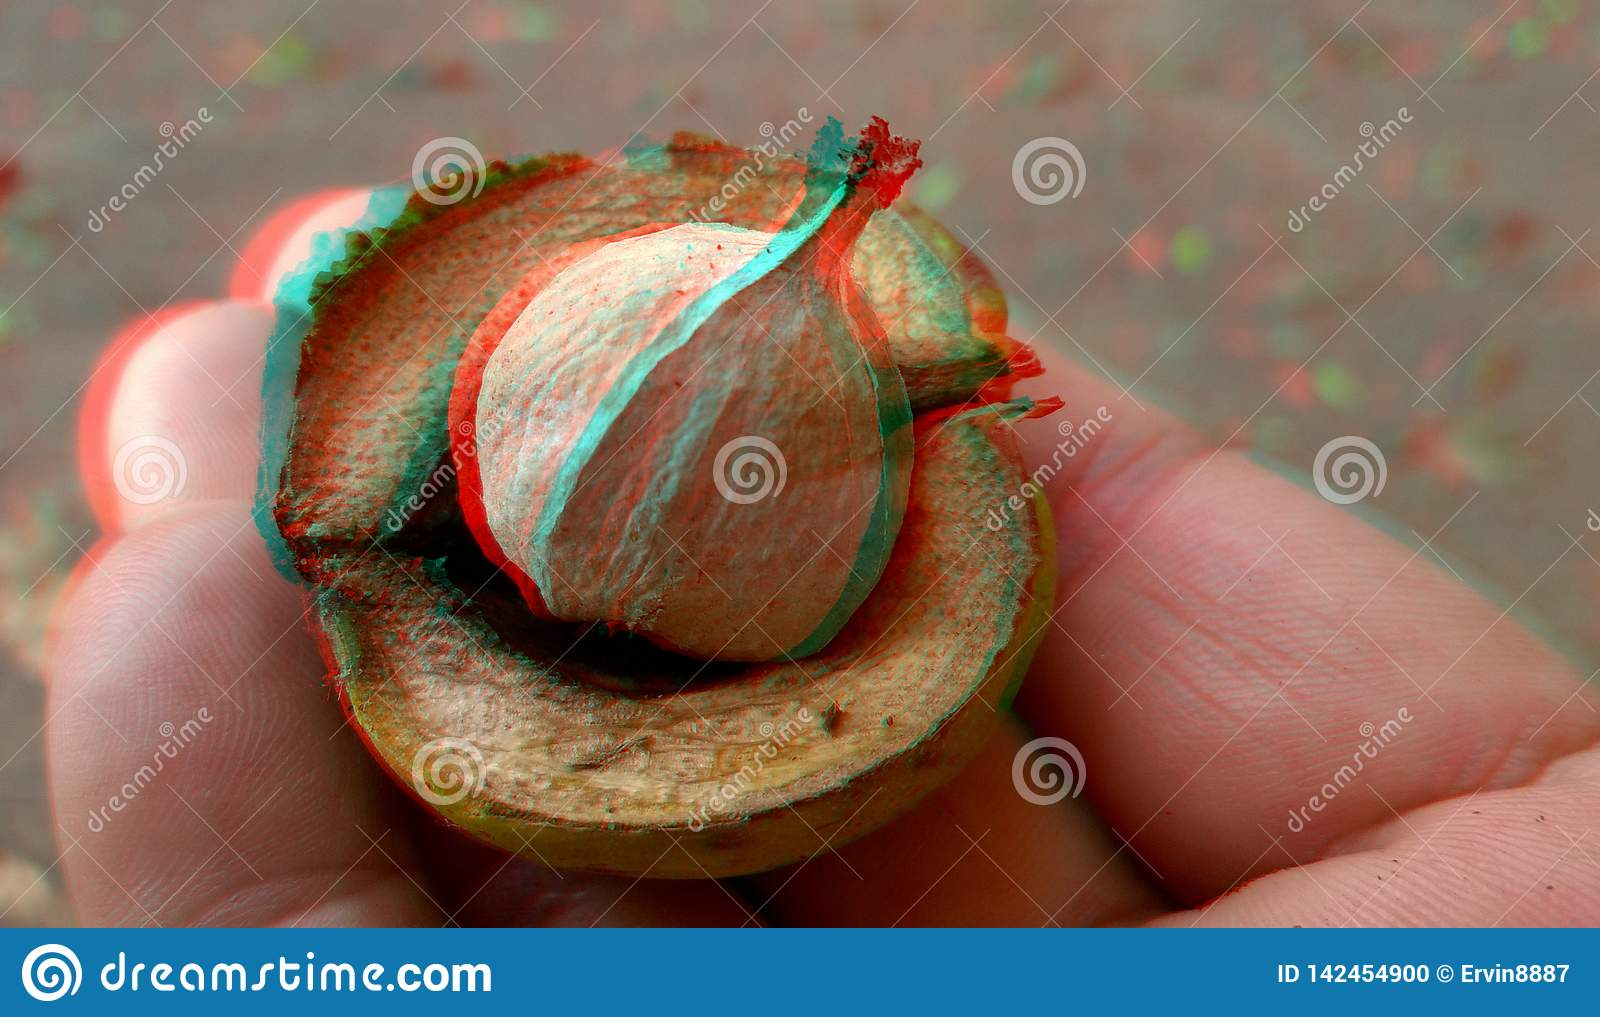 3D, anaglyph.Rype hickory nut. Autumn